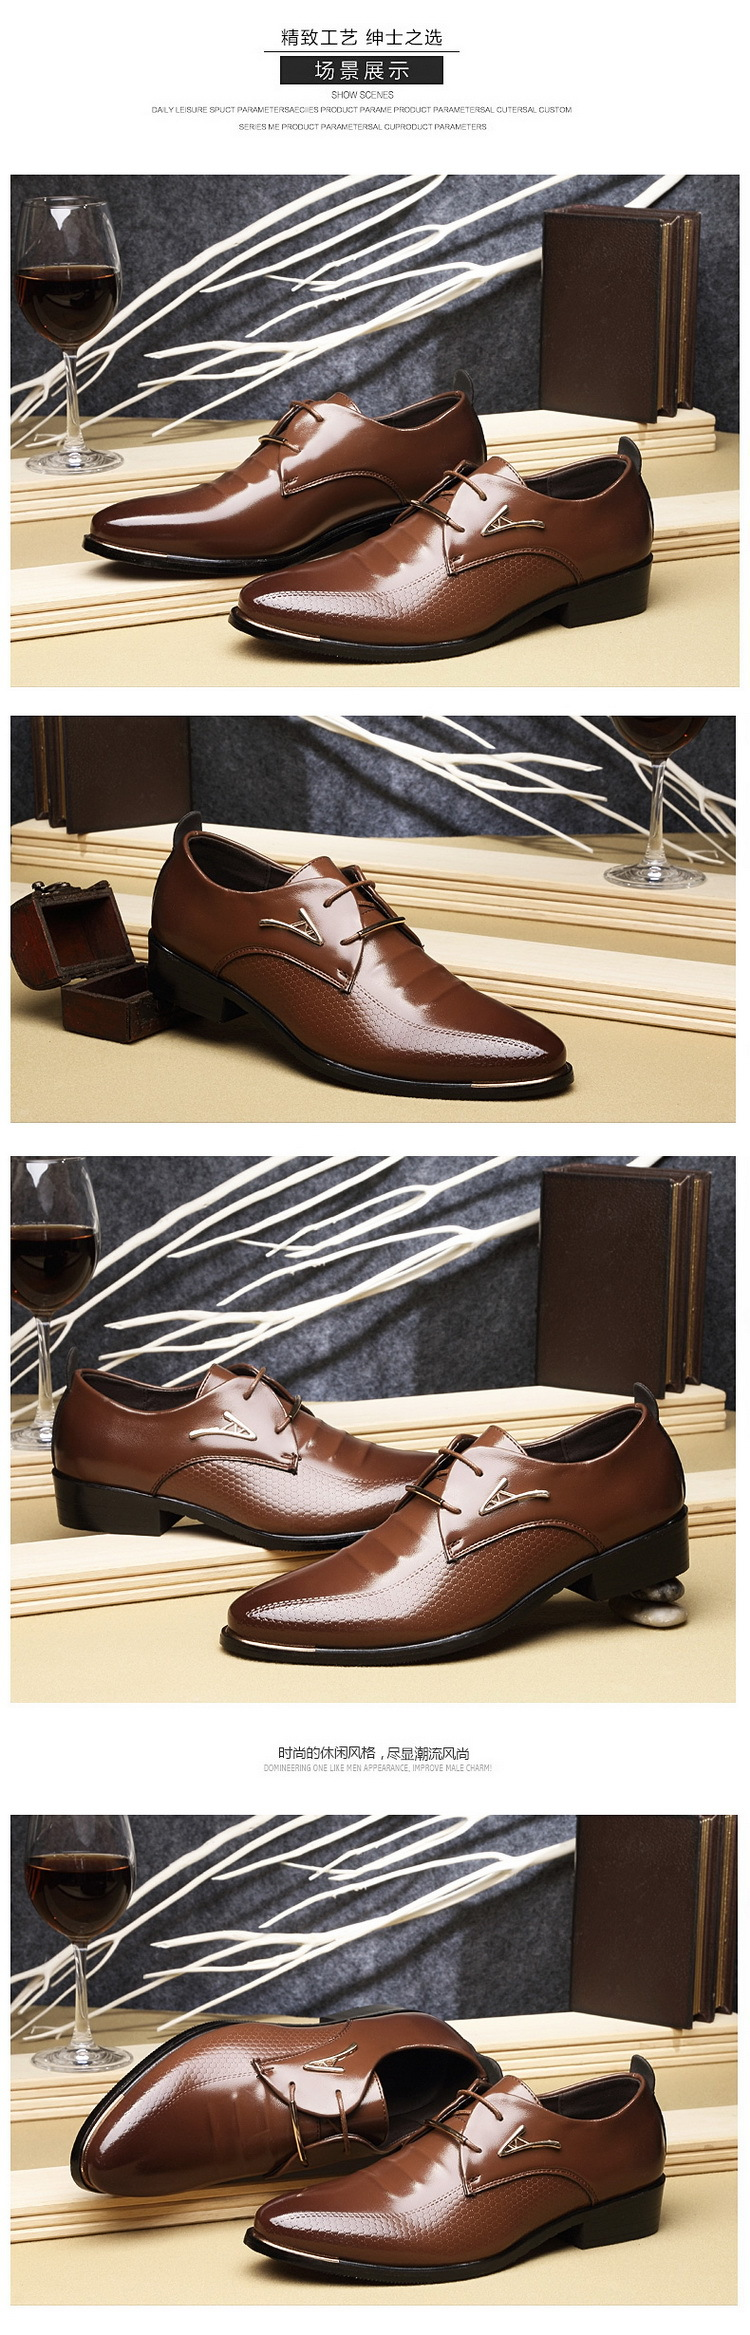 leather oxford shoes for men (11)